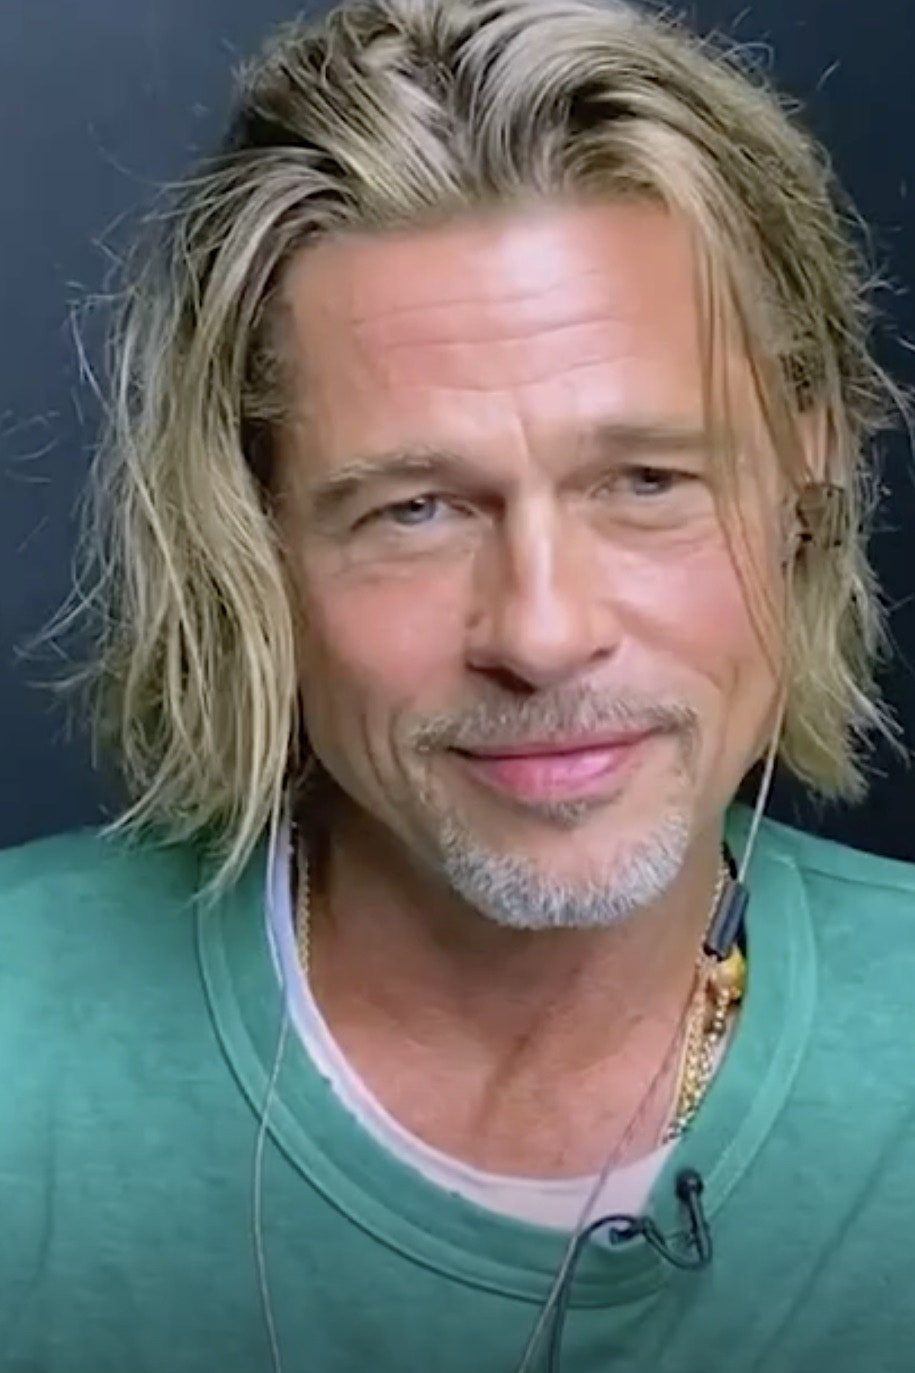 Brad And Jen Flirted On Zoom And The Internet Can T Stop Talking About Their Chemistry Brad Pitt Brad Pitt Jennifer Aniston Cool Hairstyles